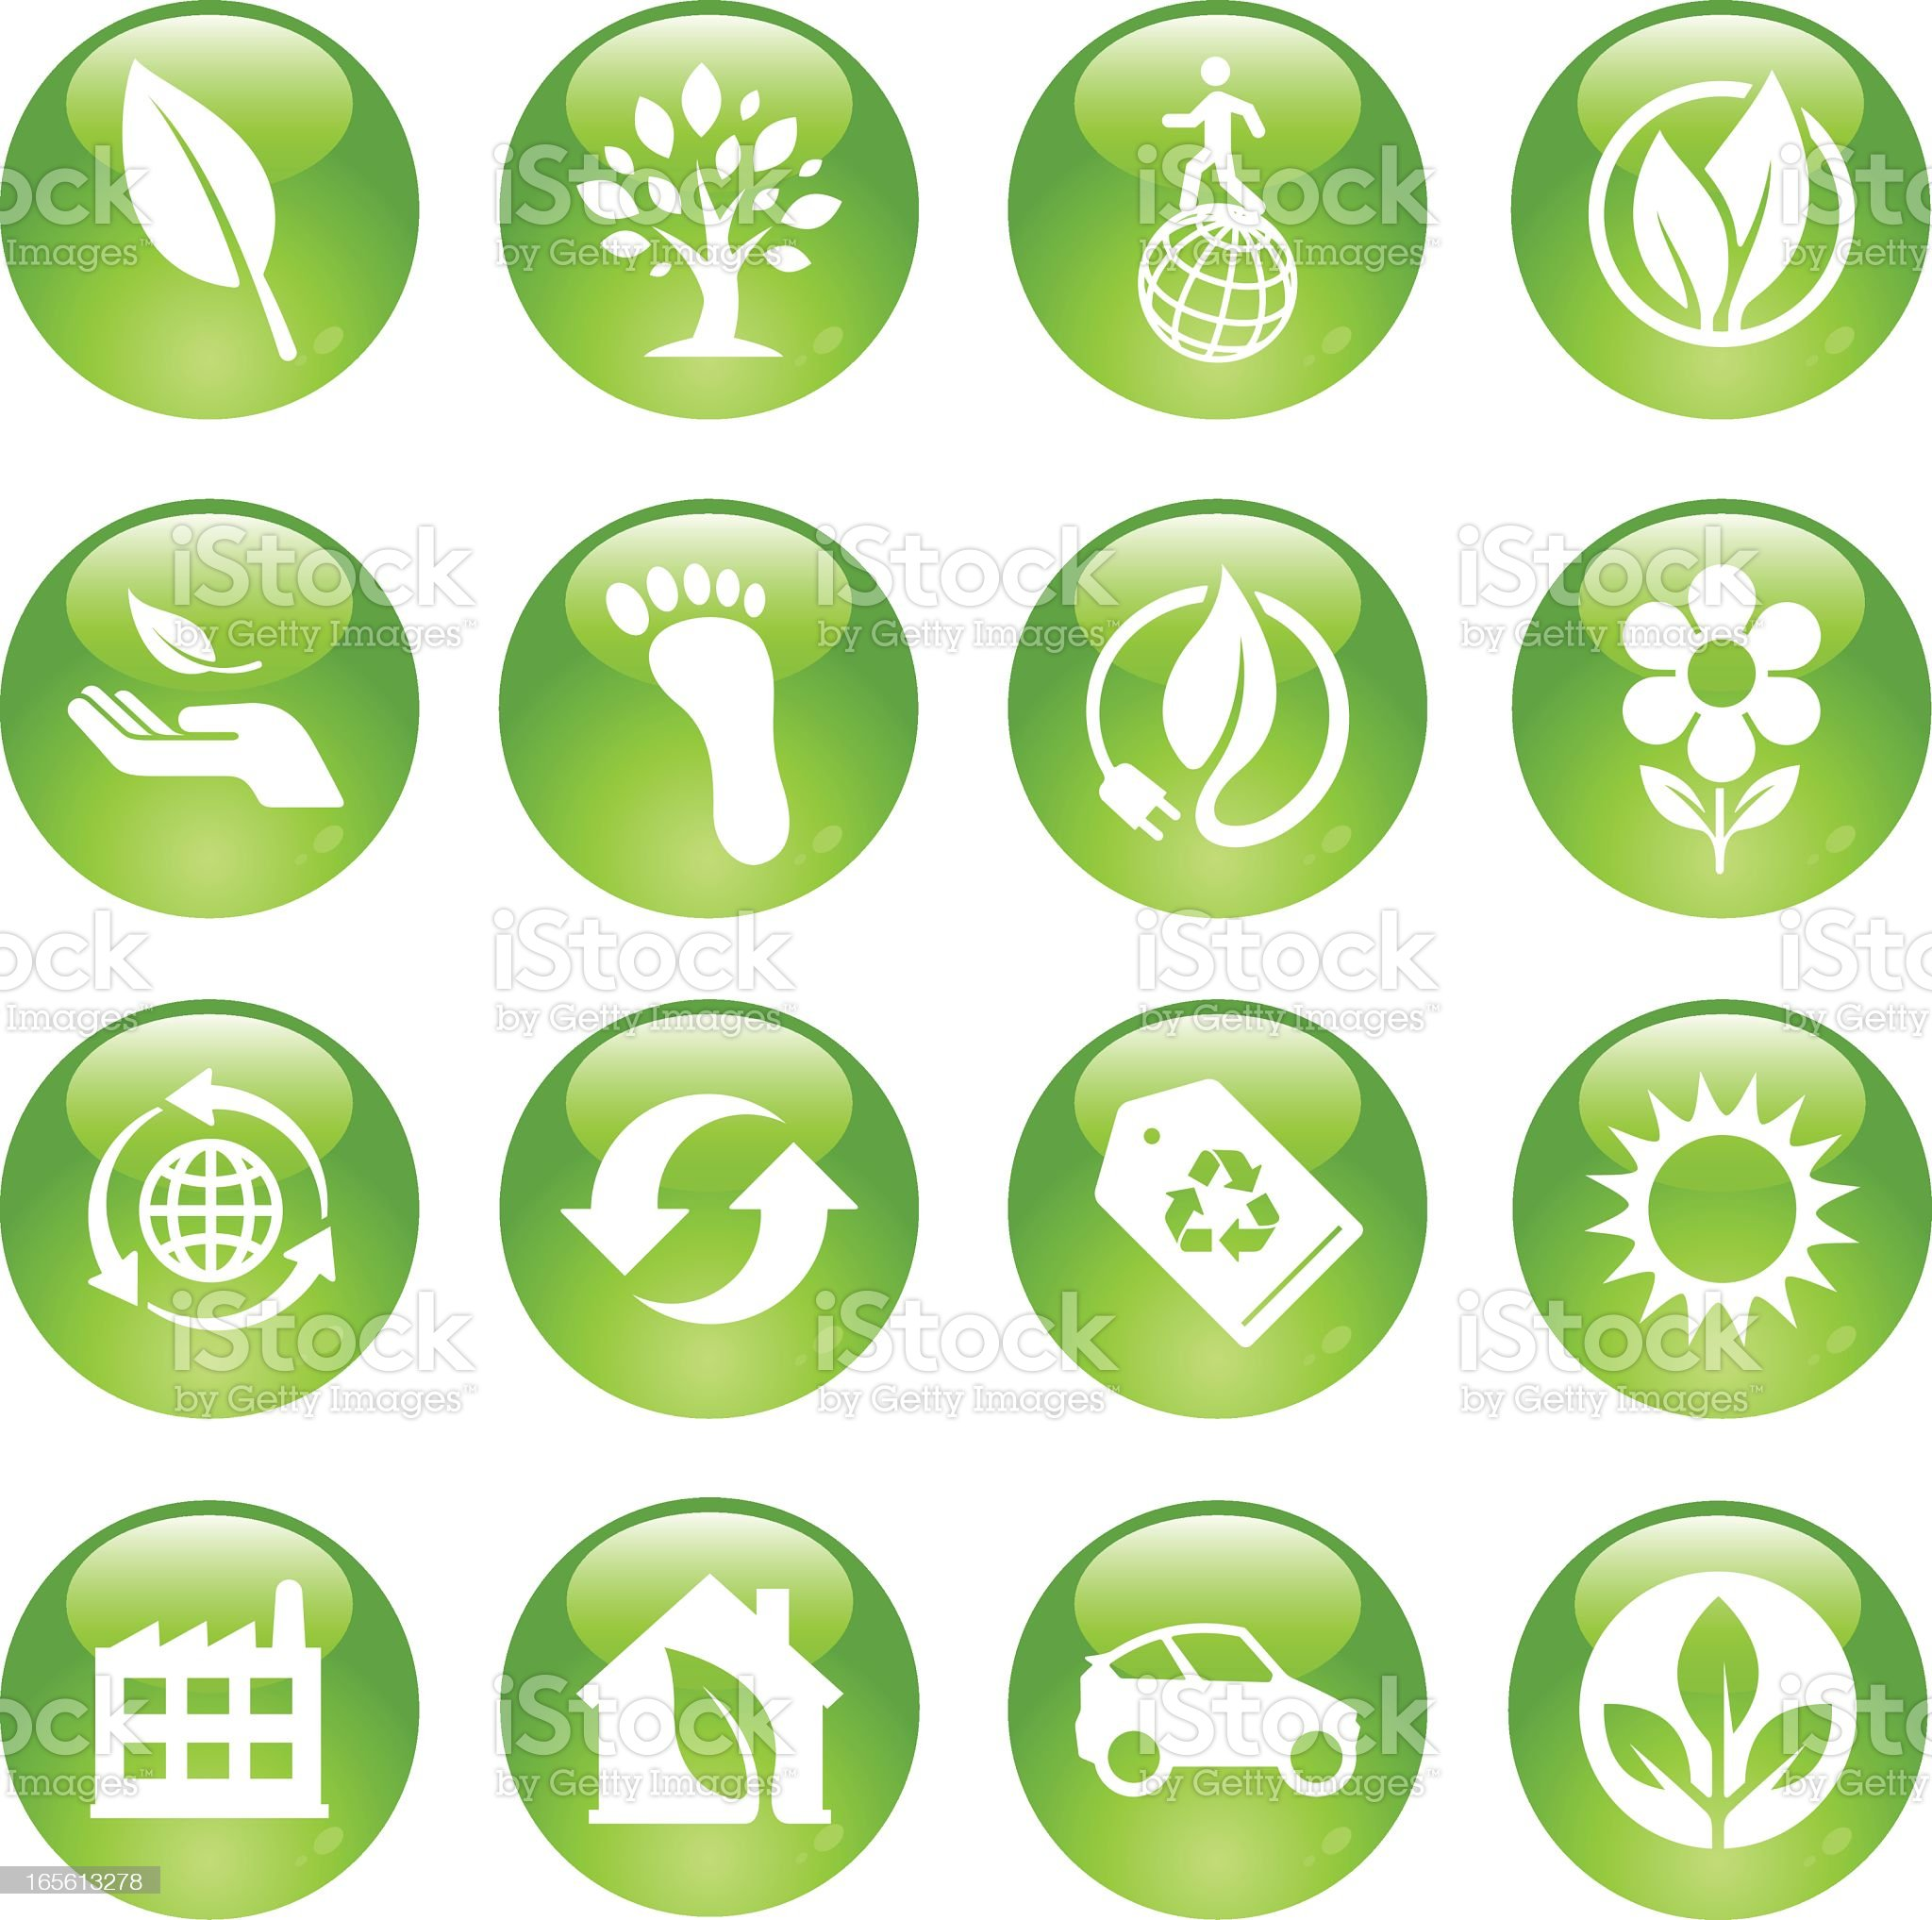 Environmental icons in green and white royalty-free stock vector art